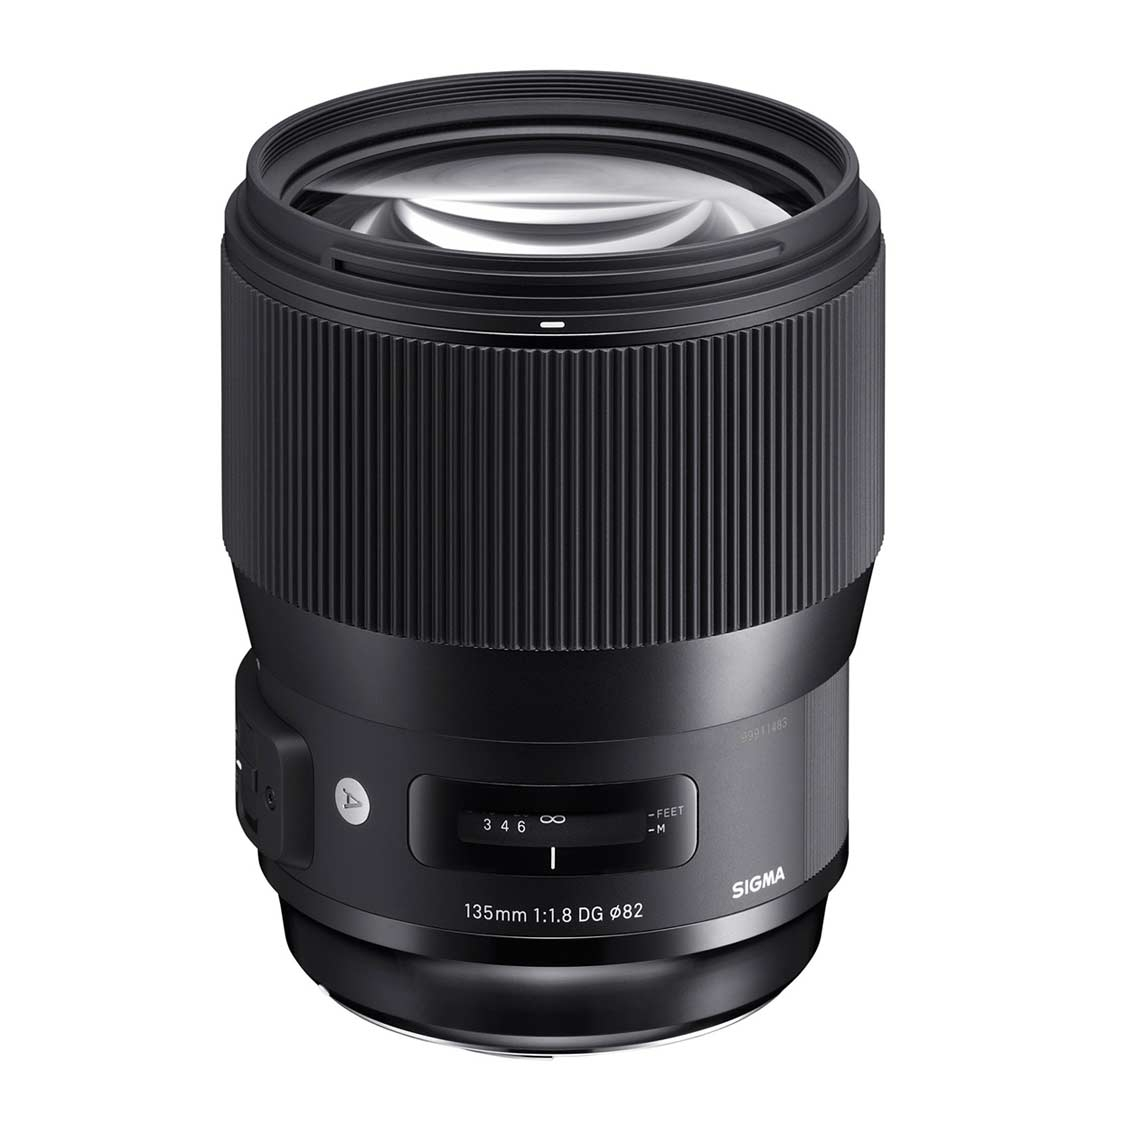 Sigma 135mm F1.8 ART DG HSM Lens for Nikon F-mount